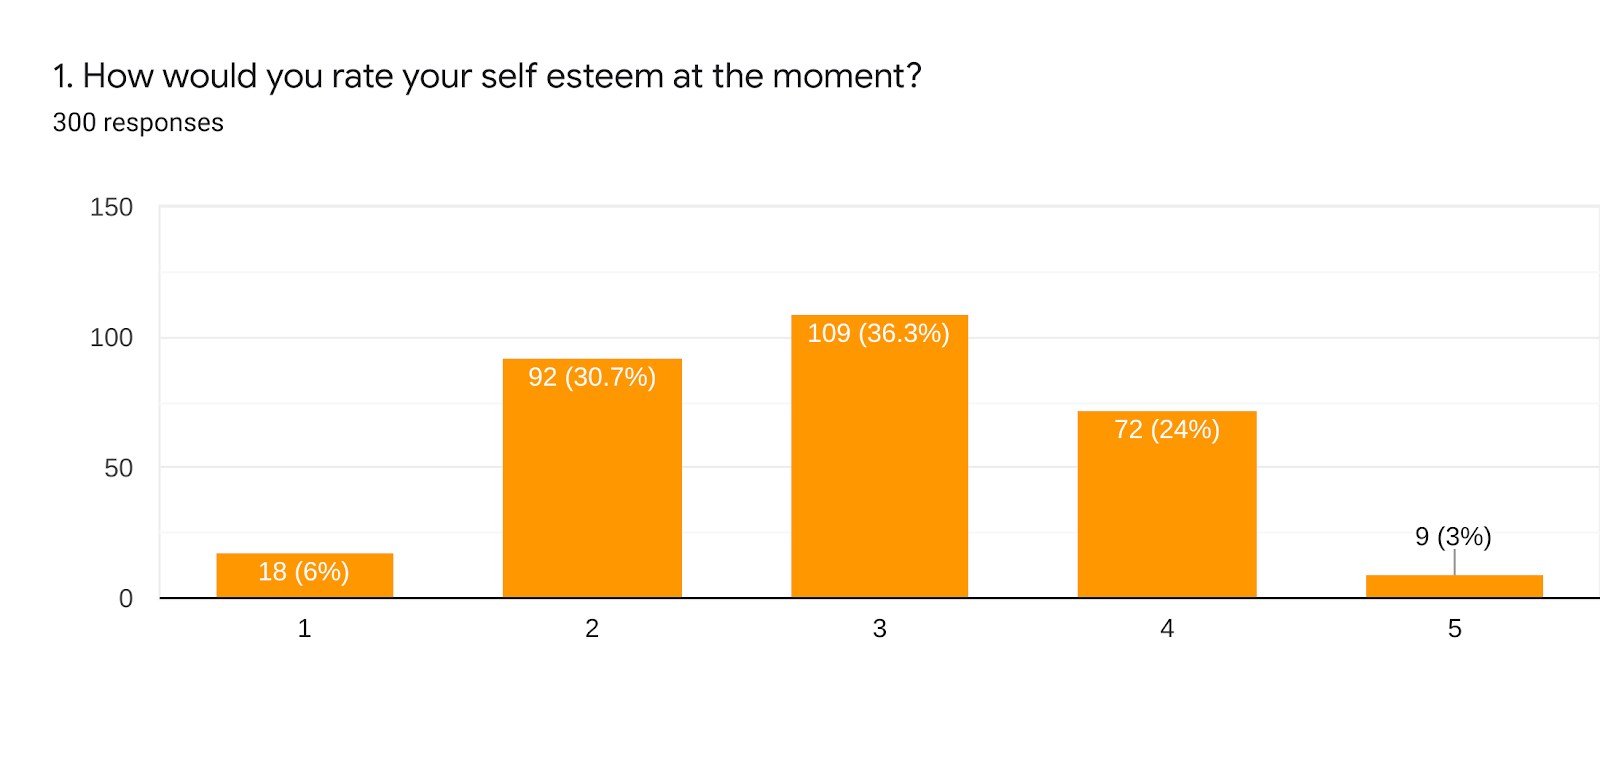 Forms response chart. Question title: 1. How would you rate your self esteem at the moment?. Number of responses: 300 responses.